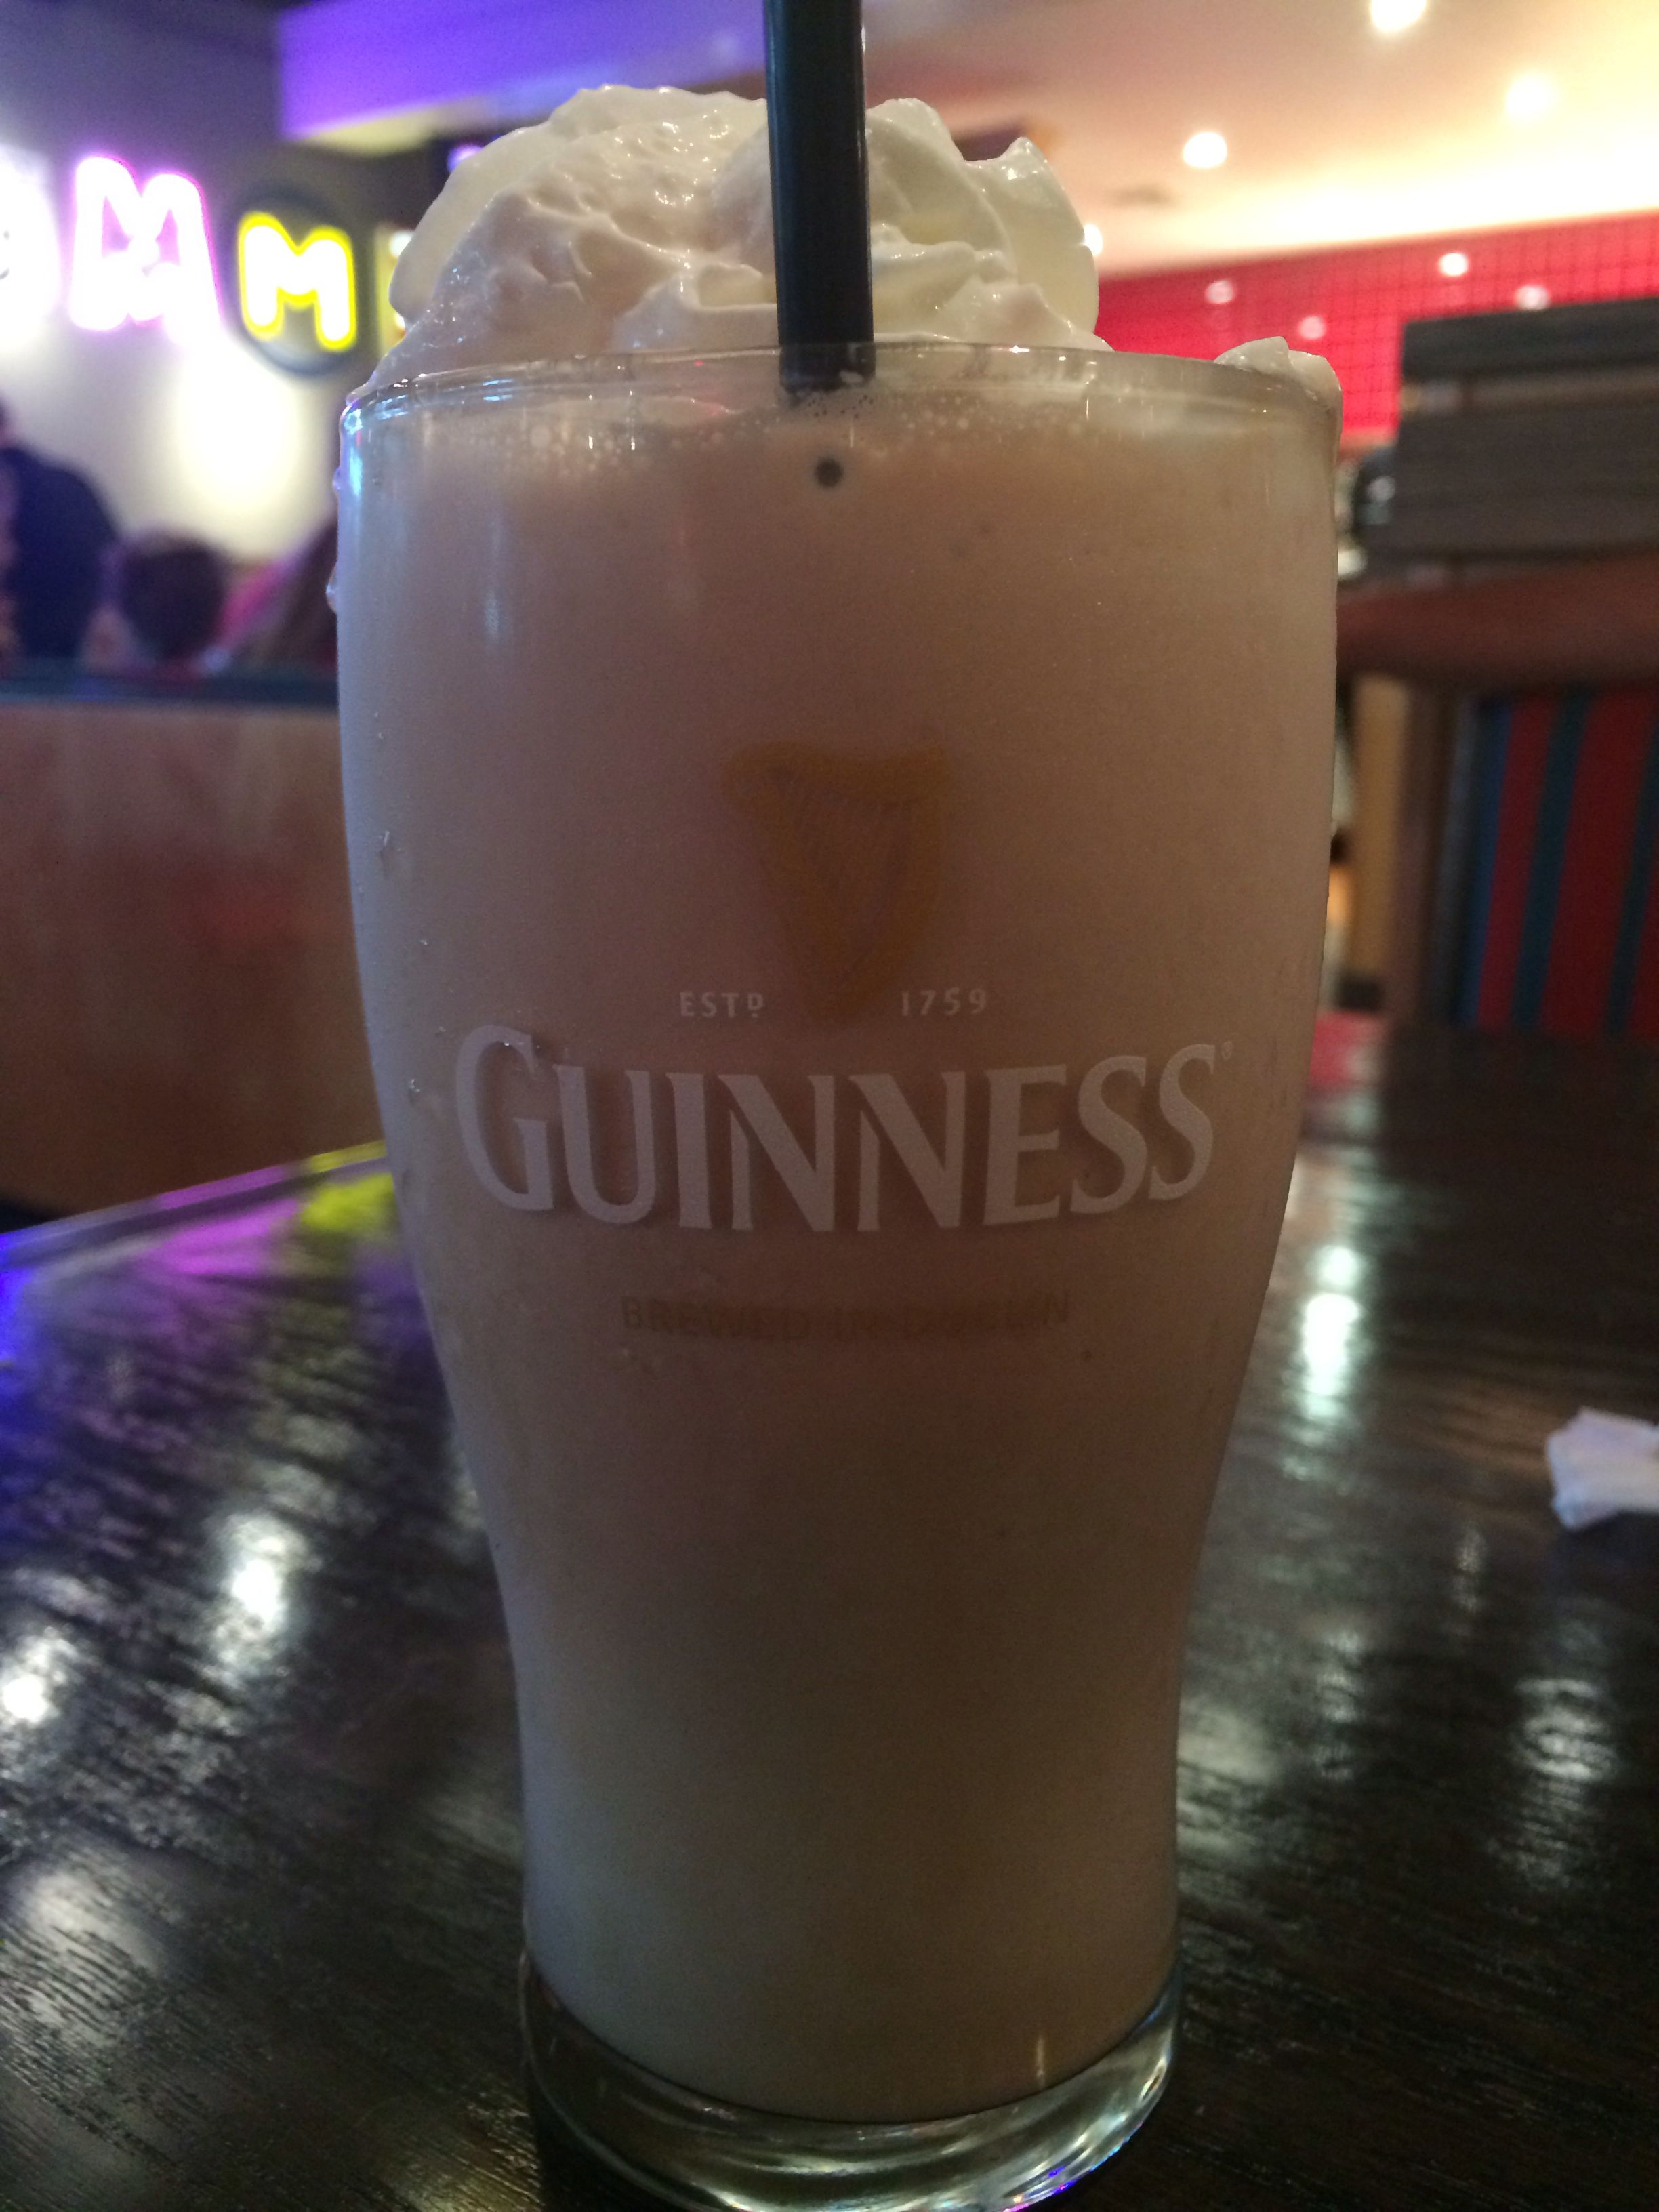 irish shake at red robin ingredients include guinness stout